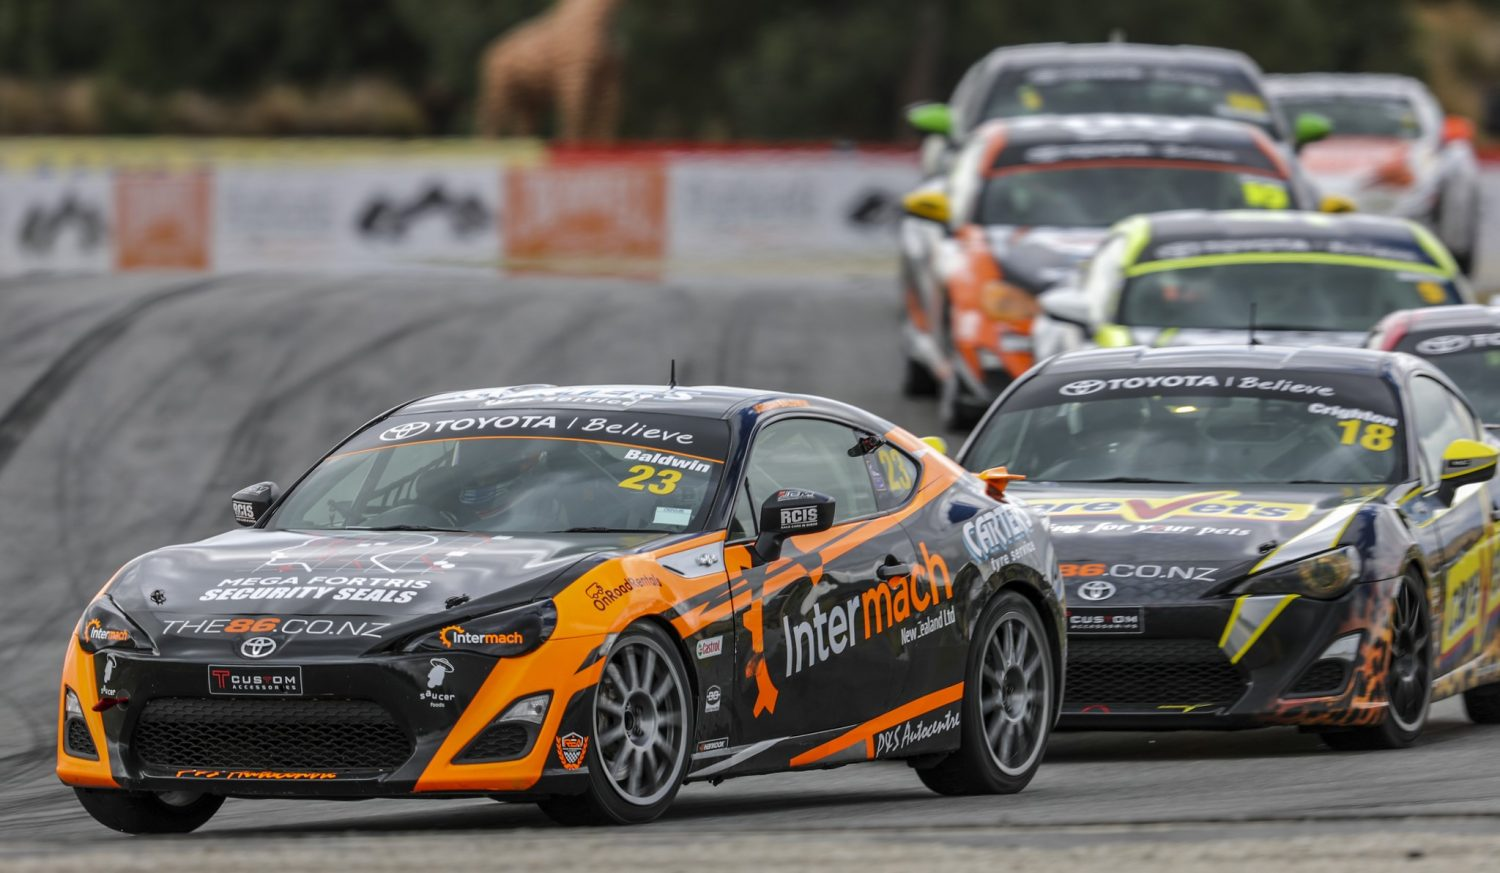 Toyota 86 Championship – the race is on